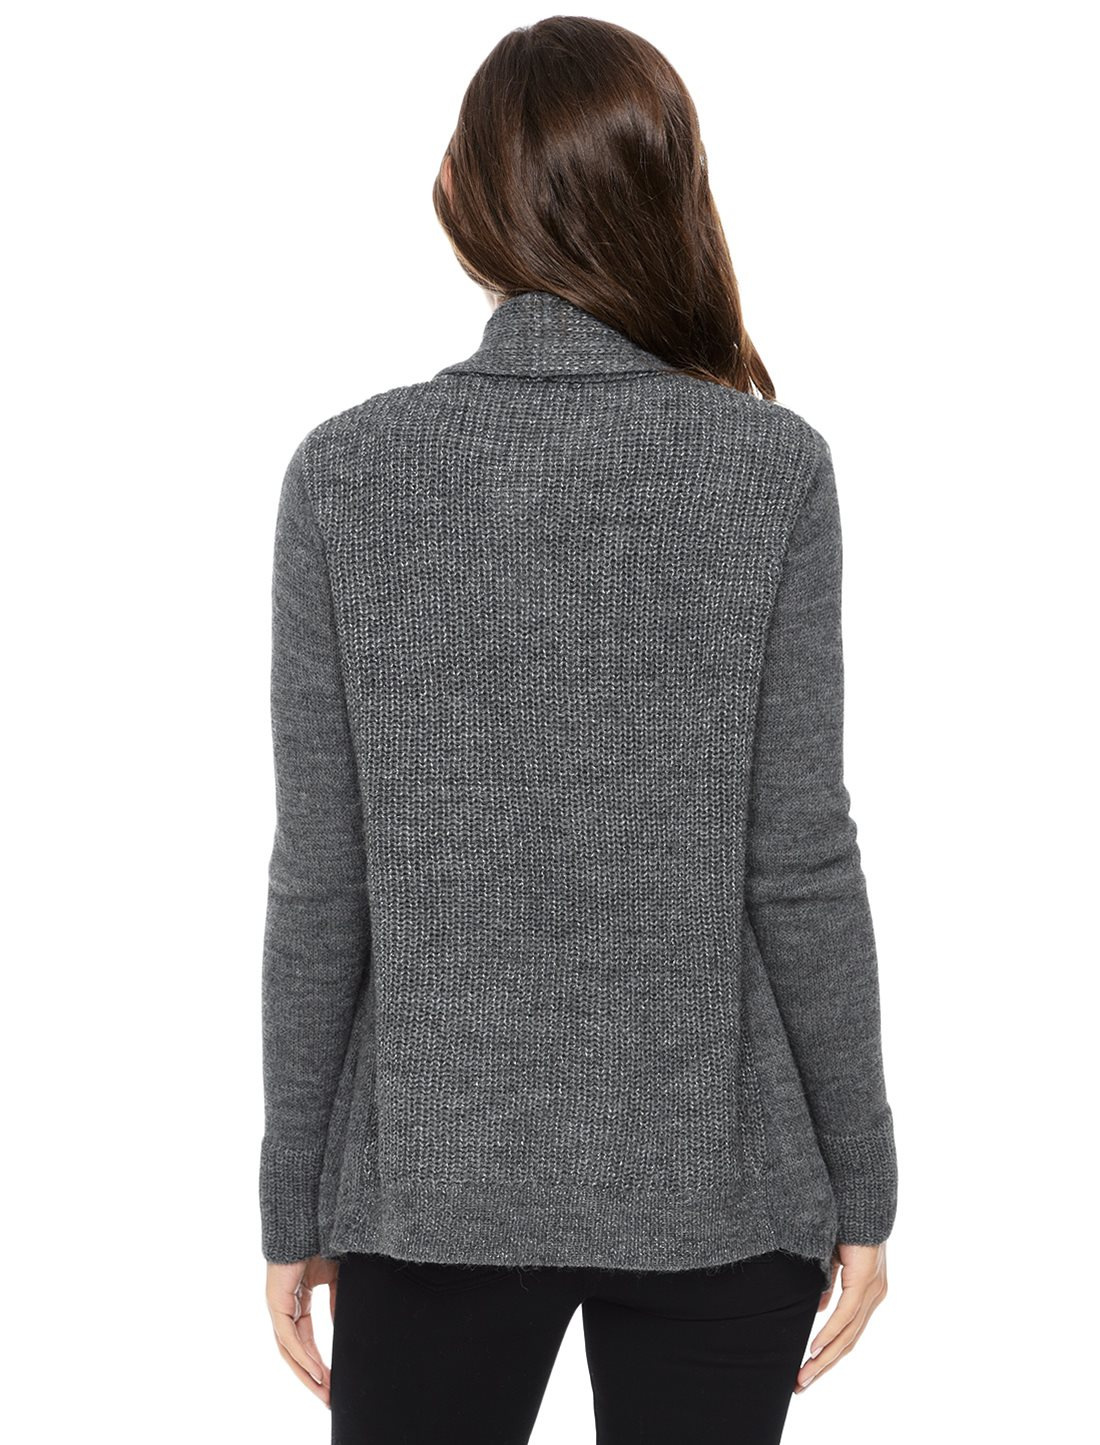 Two By Vince Camuto Metallic Cowl Neck Sweater in Grey